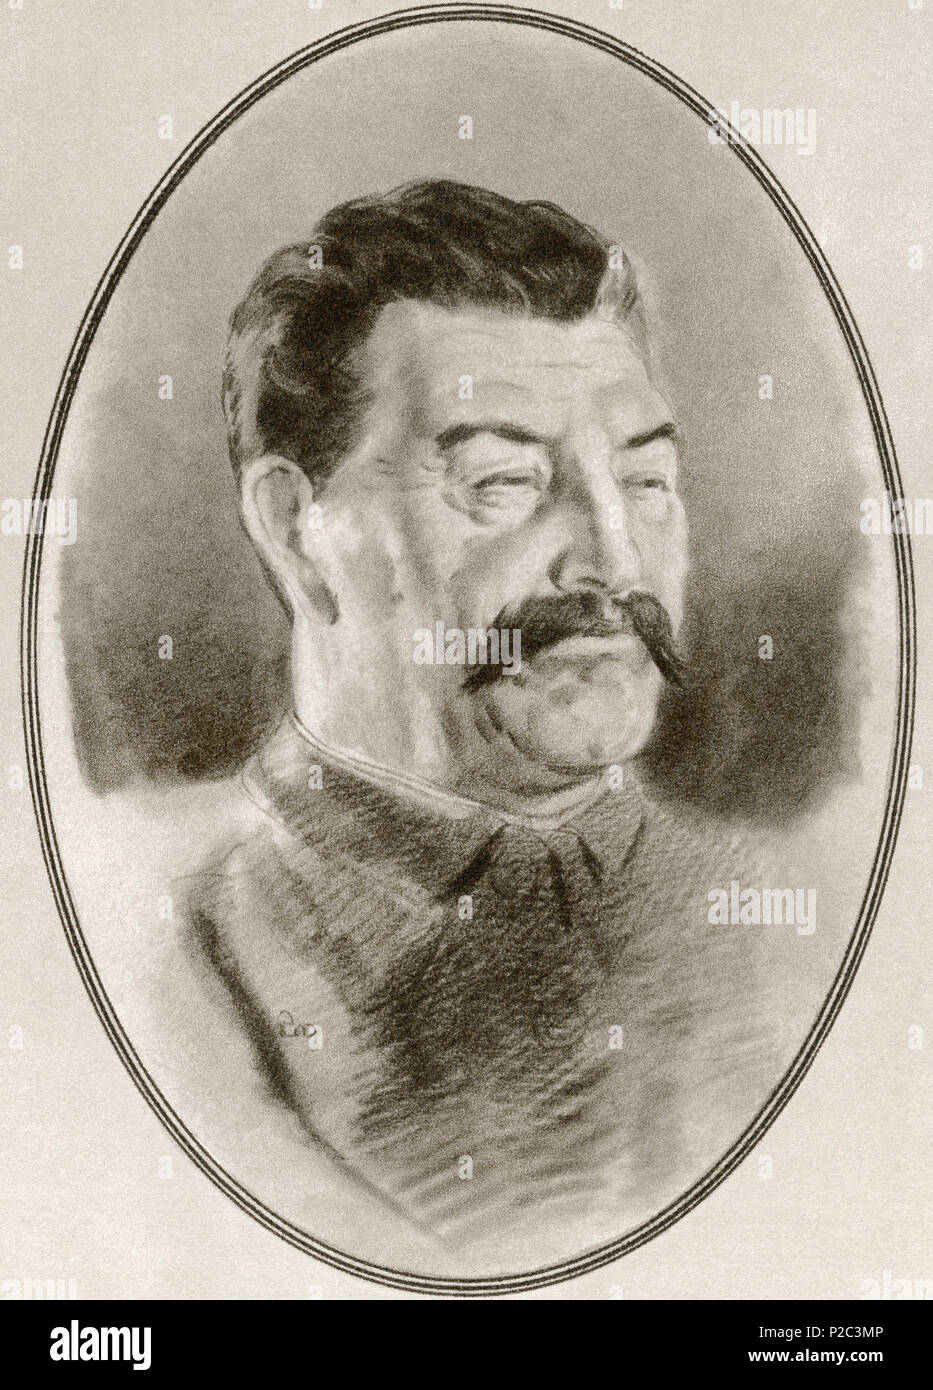 EDITORIAL  Joseph Vissarionovich Stalin, 1878 – 1953.  Soviet revolutionary and politician.  Illustration by Gordon Ross, American artist and illustrator (1873-1946), from Living Biographies of Famous Rulers. - Stock Image